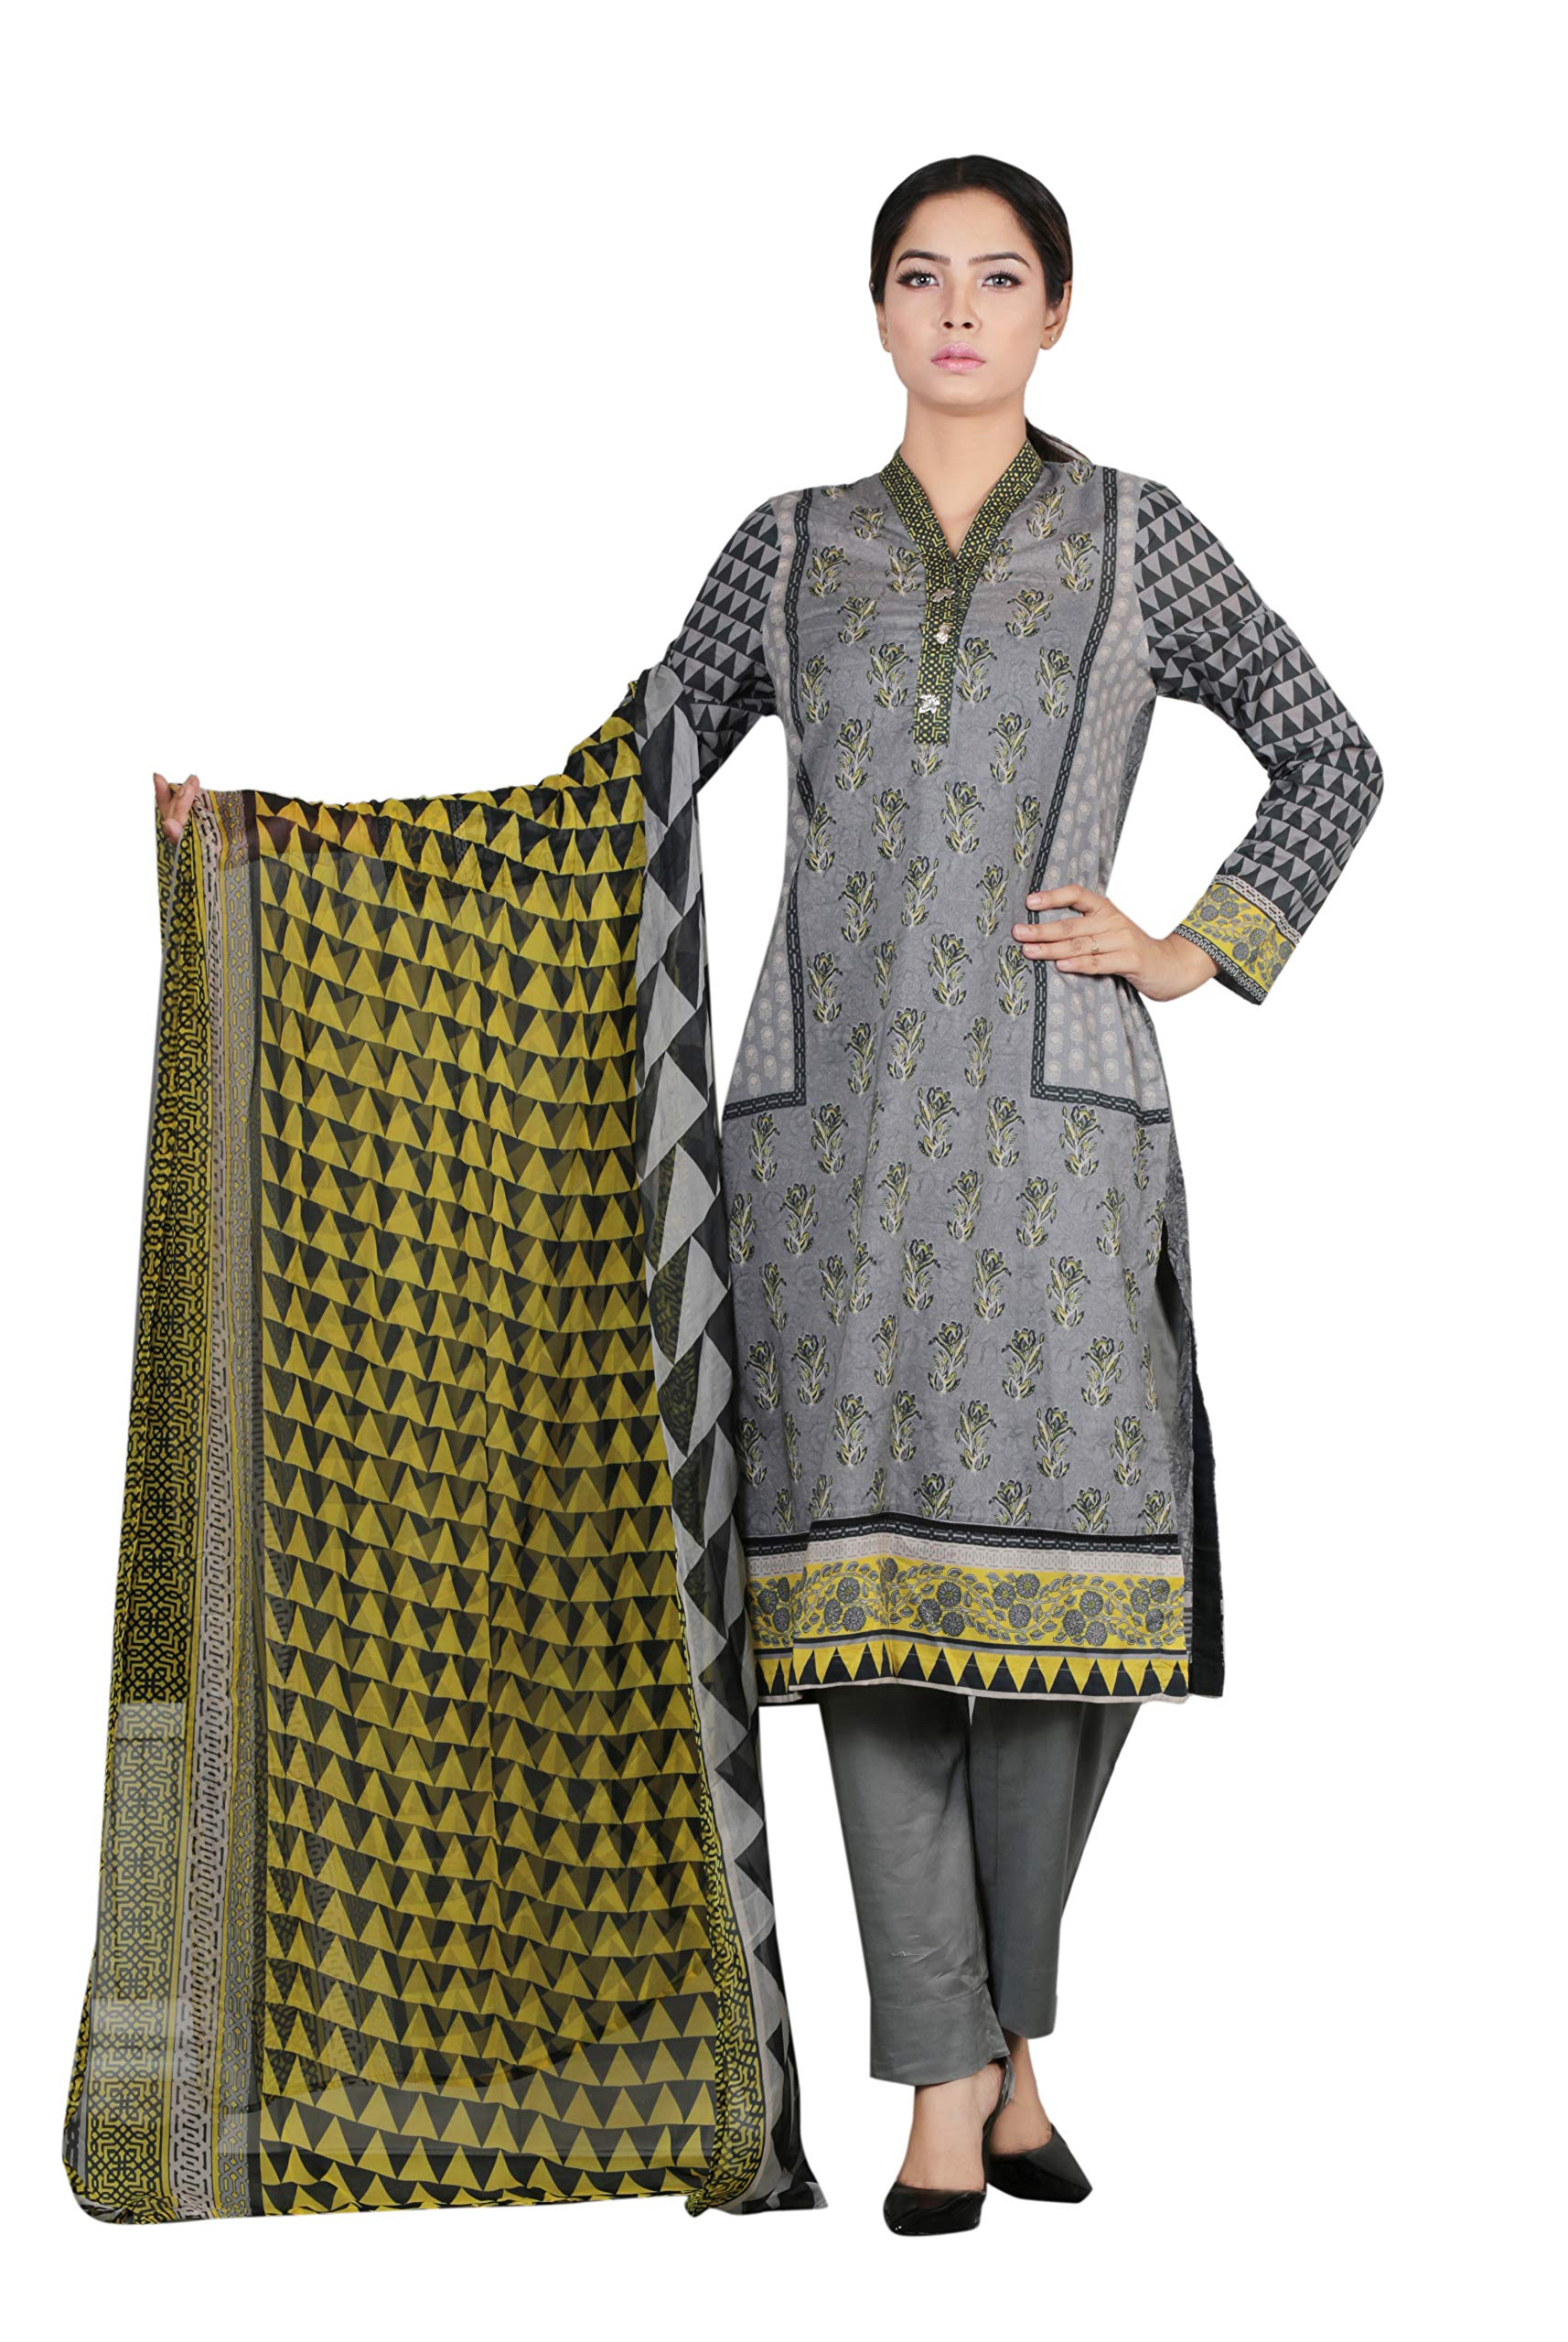 YELLOW 3pcs Moon Rock Block Printed Kurti with Chiffon Dupatta and Solid Color Trouser Ready to wear